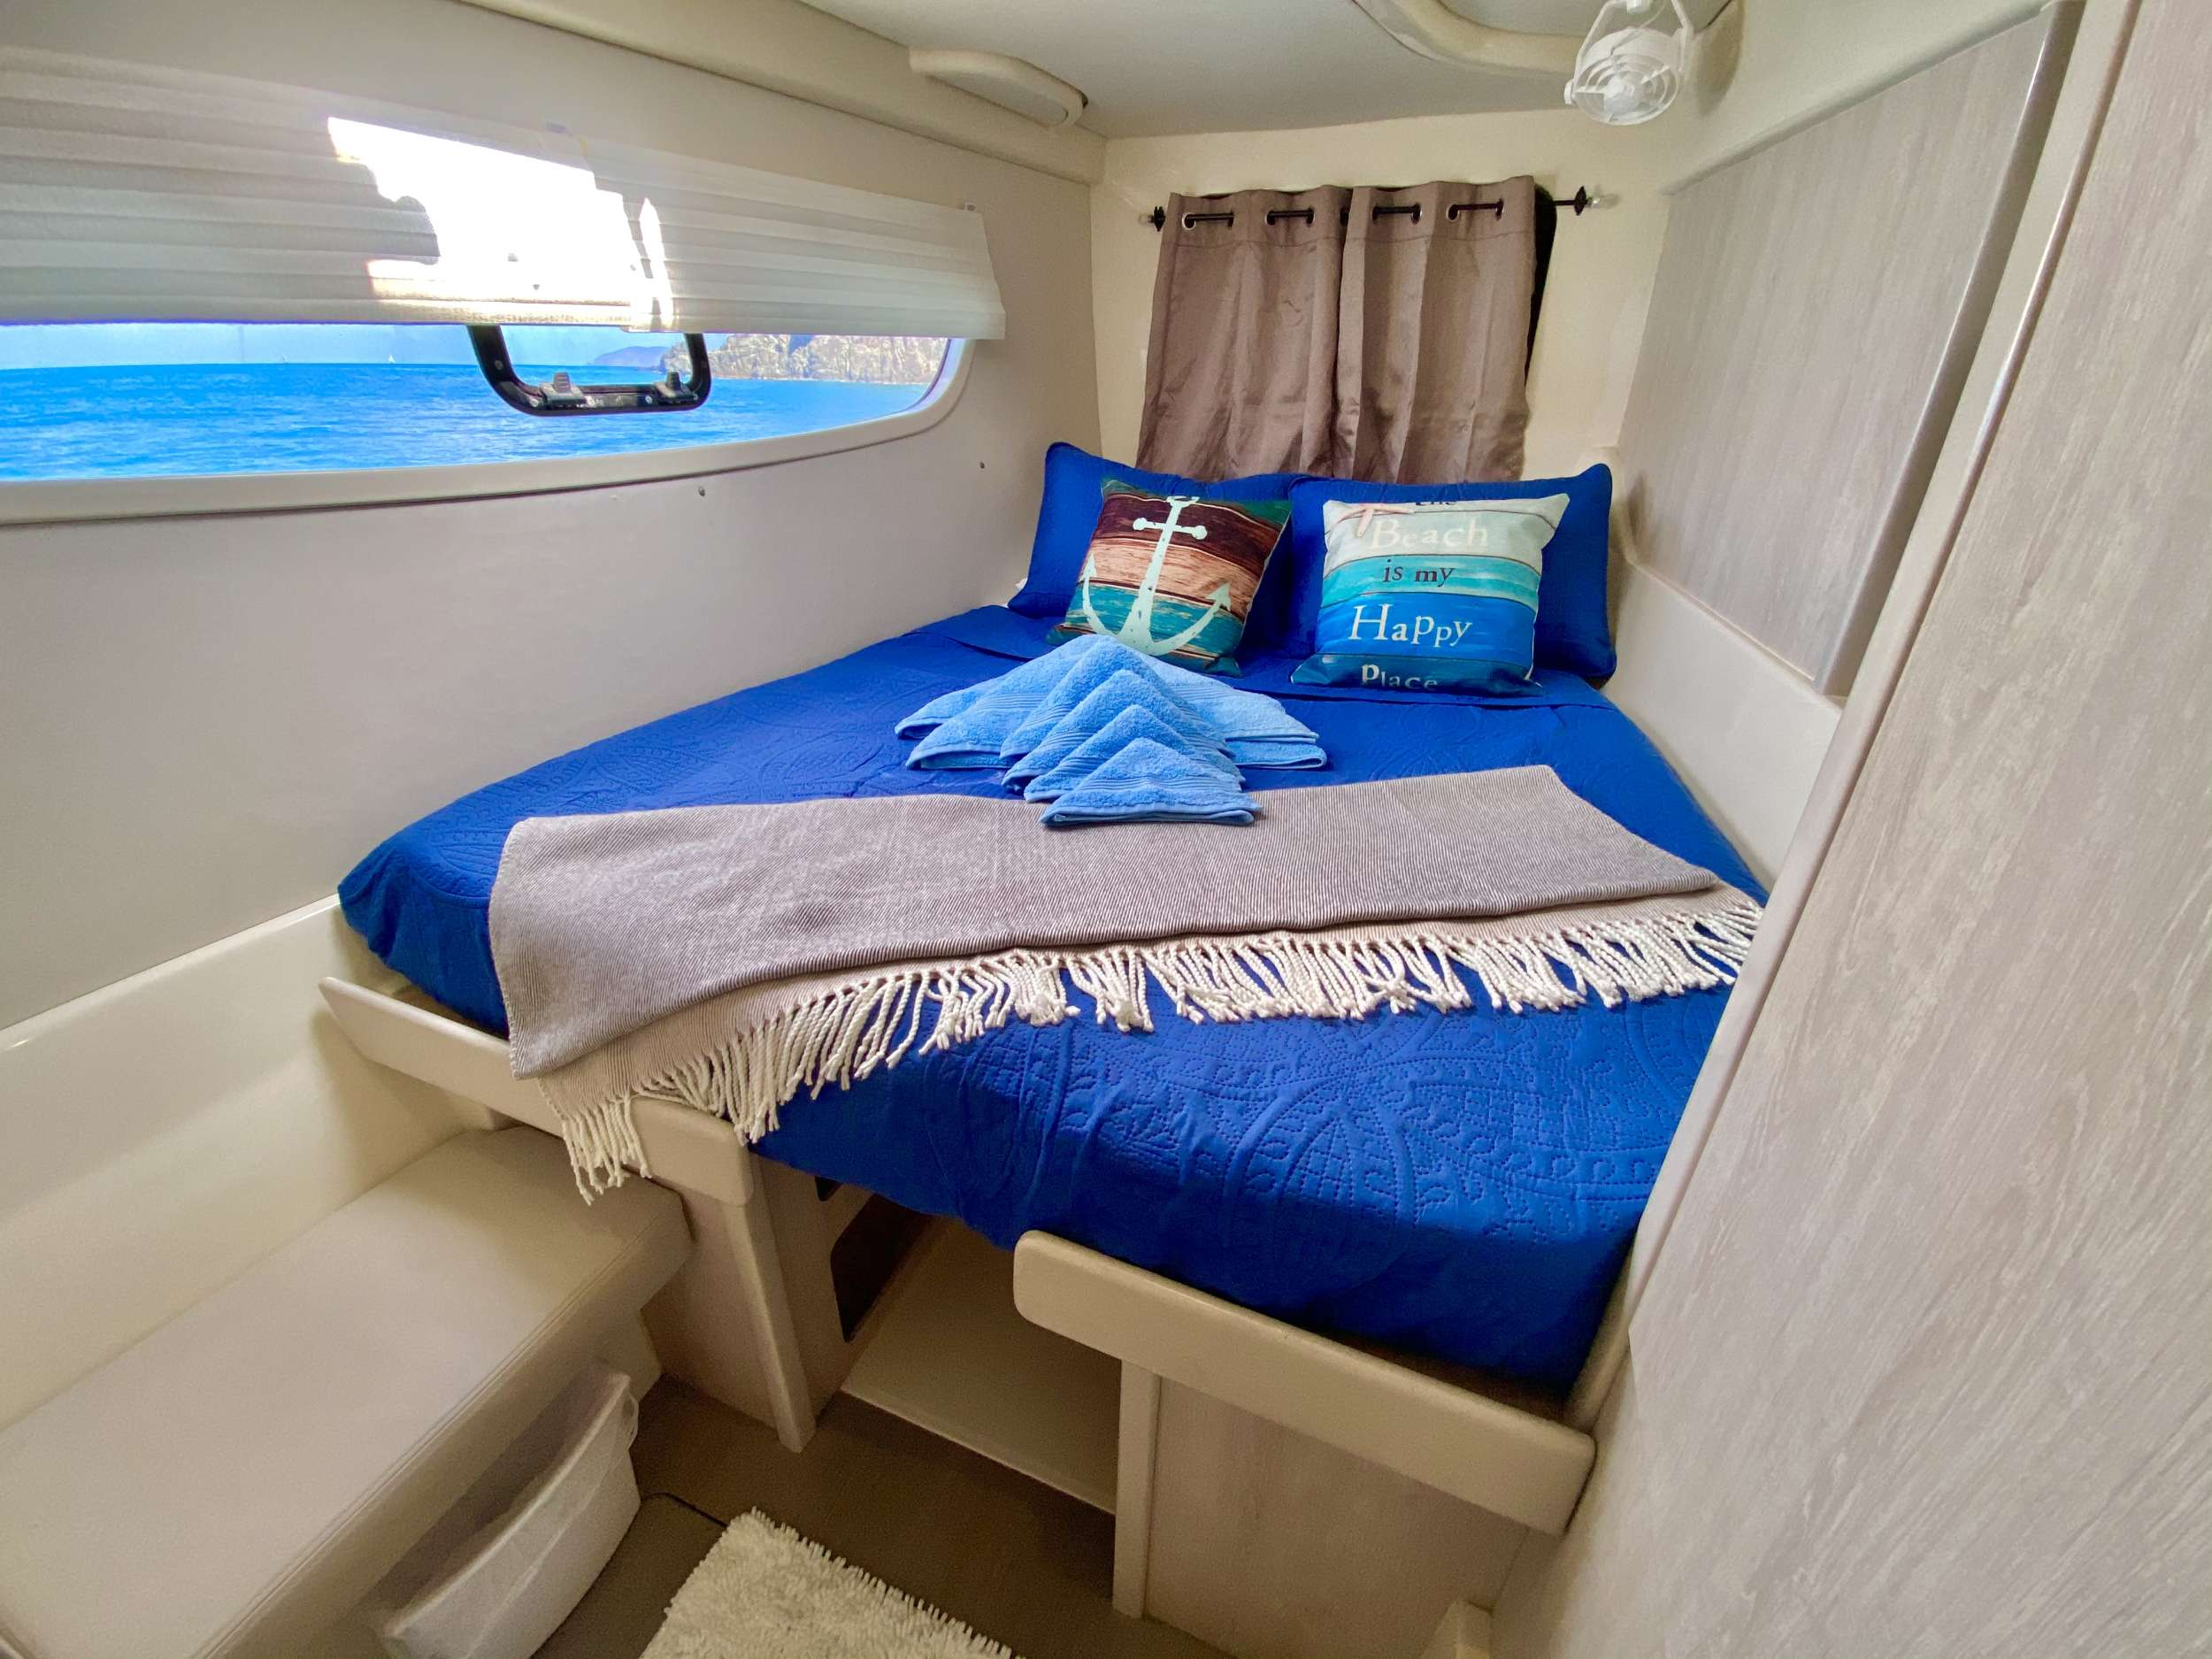 LET'S PLAY TWO yacht image # 13